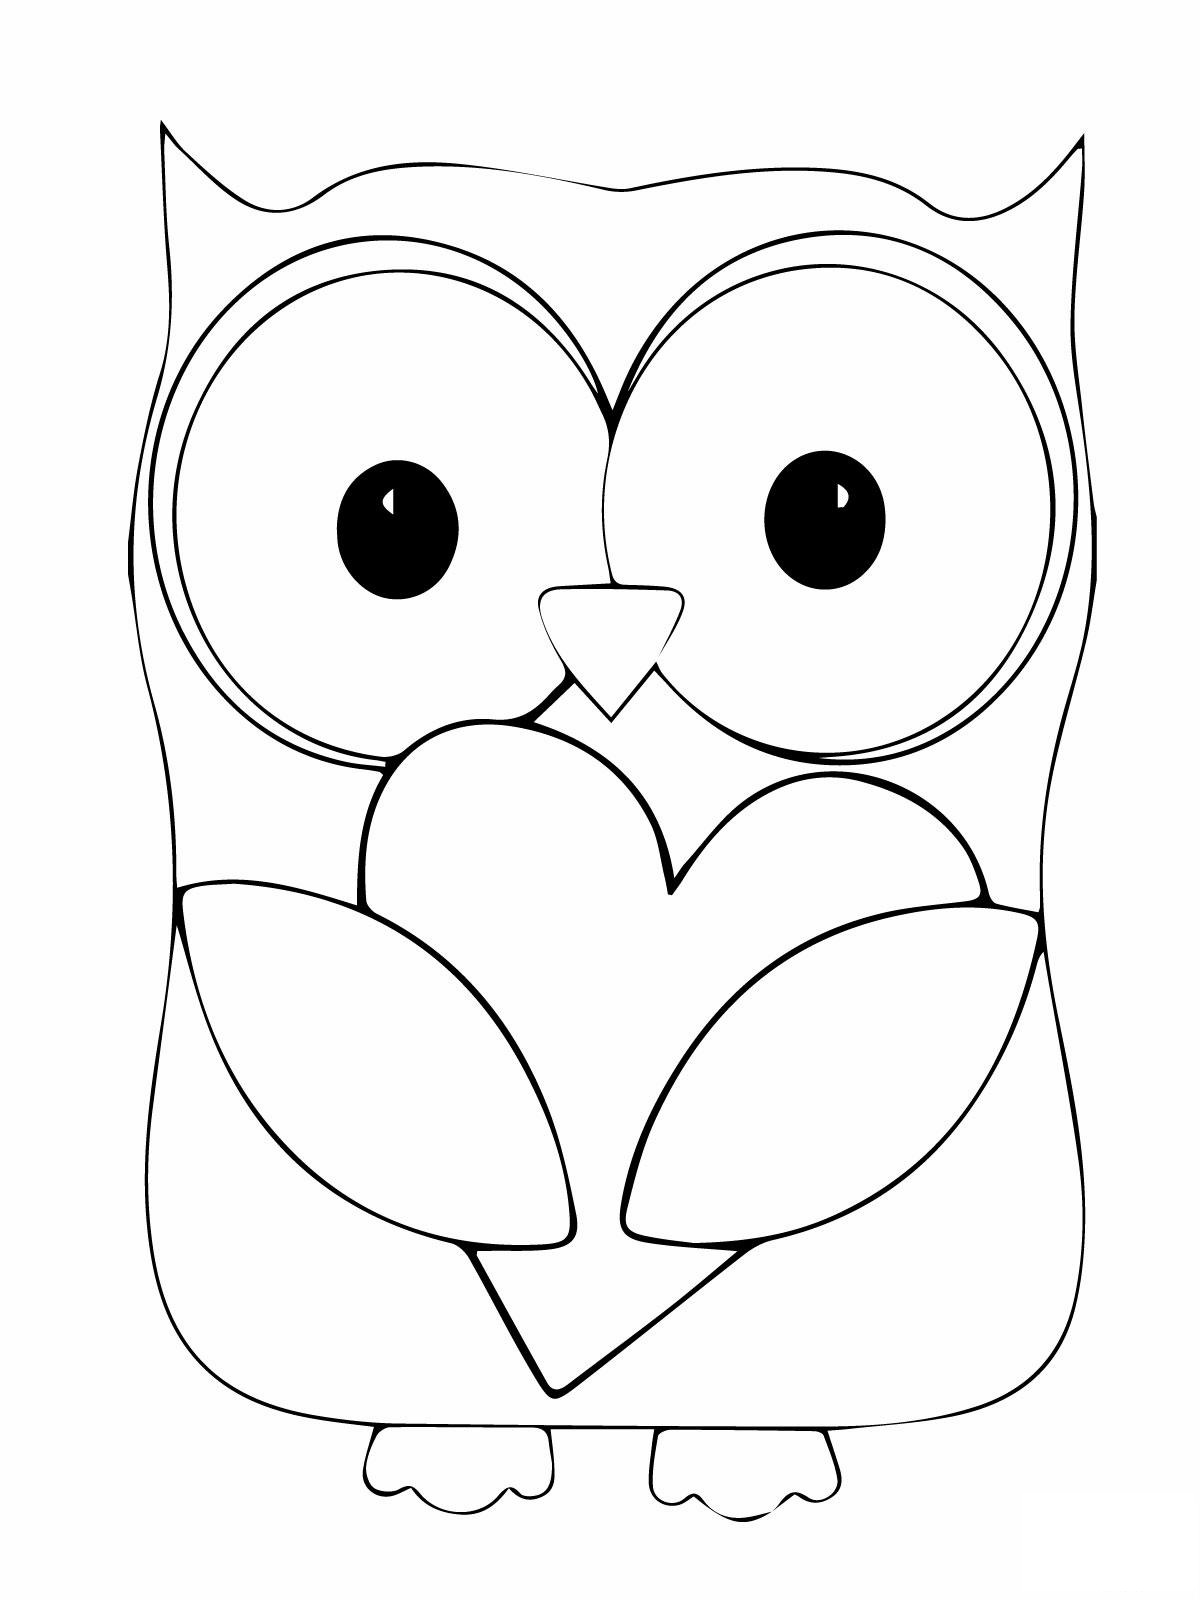 picture of owls to color free cartoon owl coloring pages download free clip art owls of color picture to